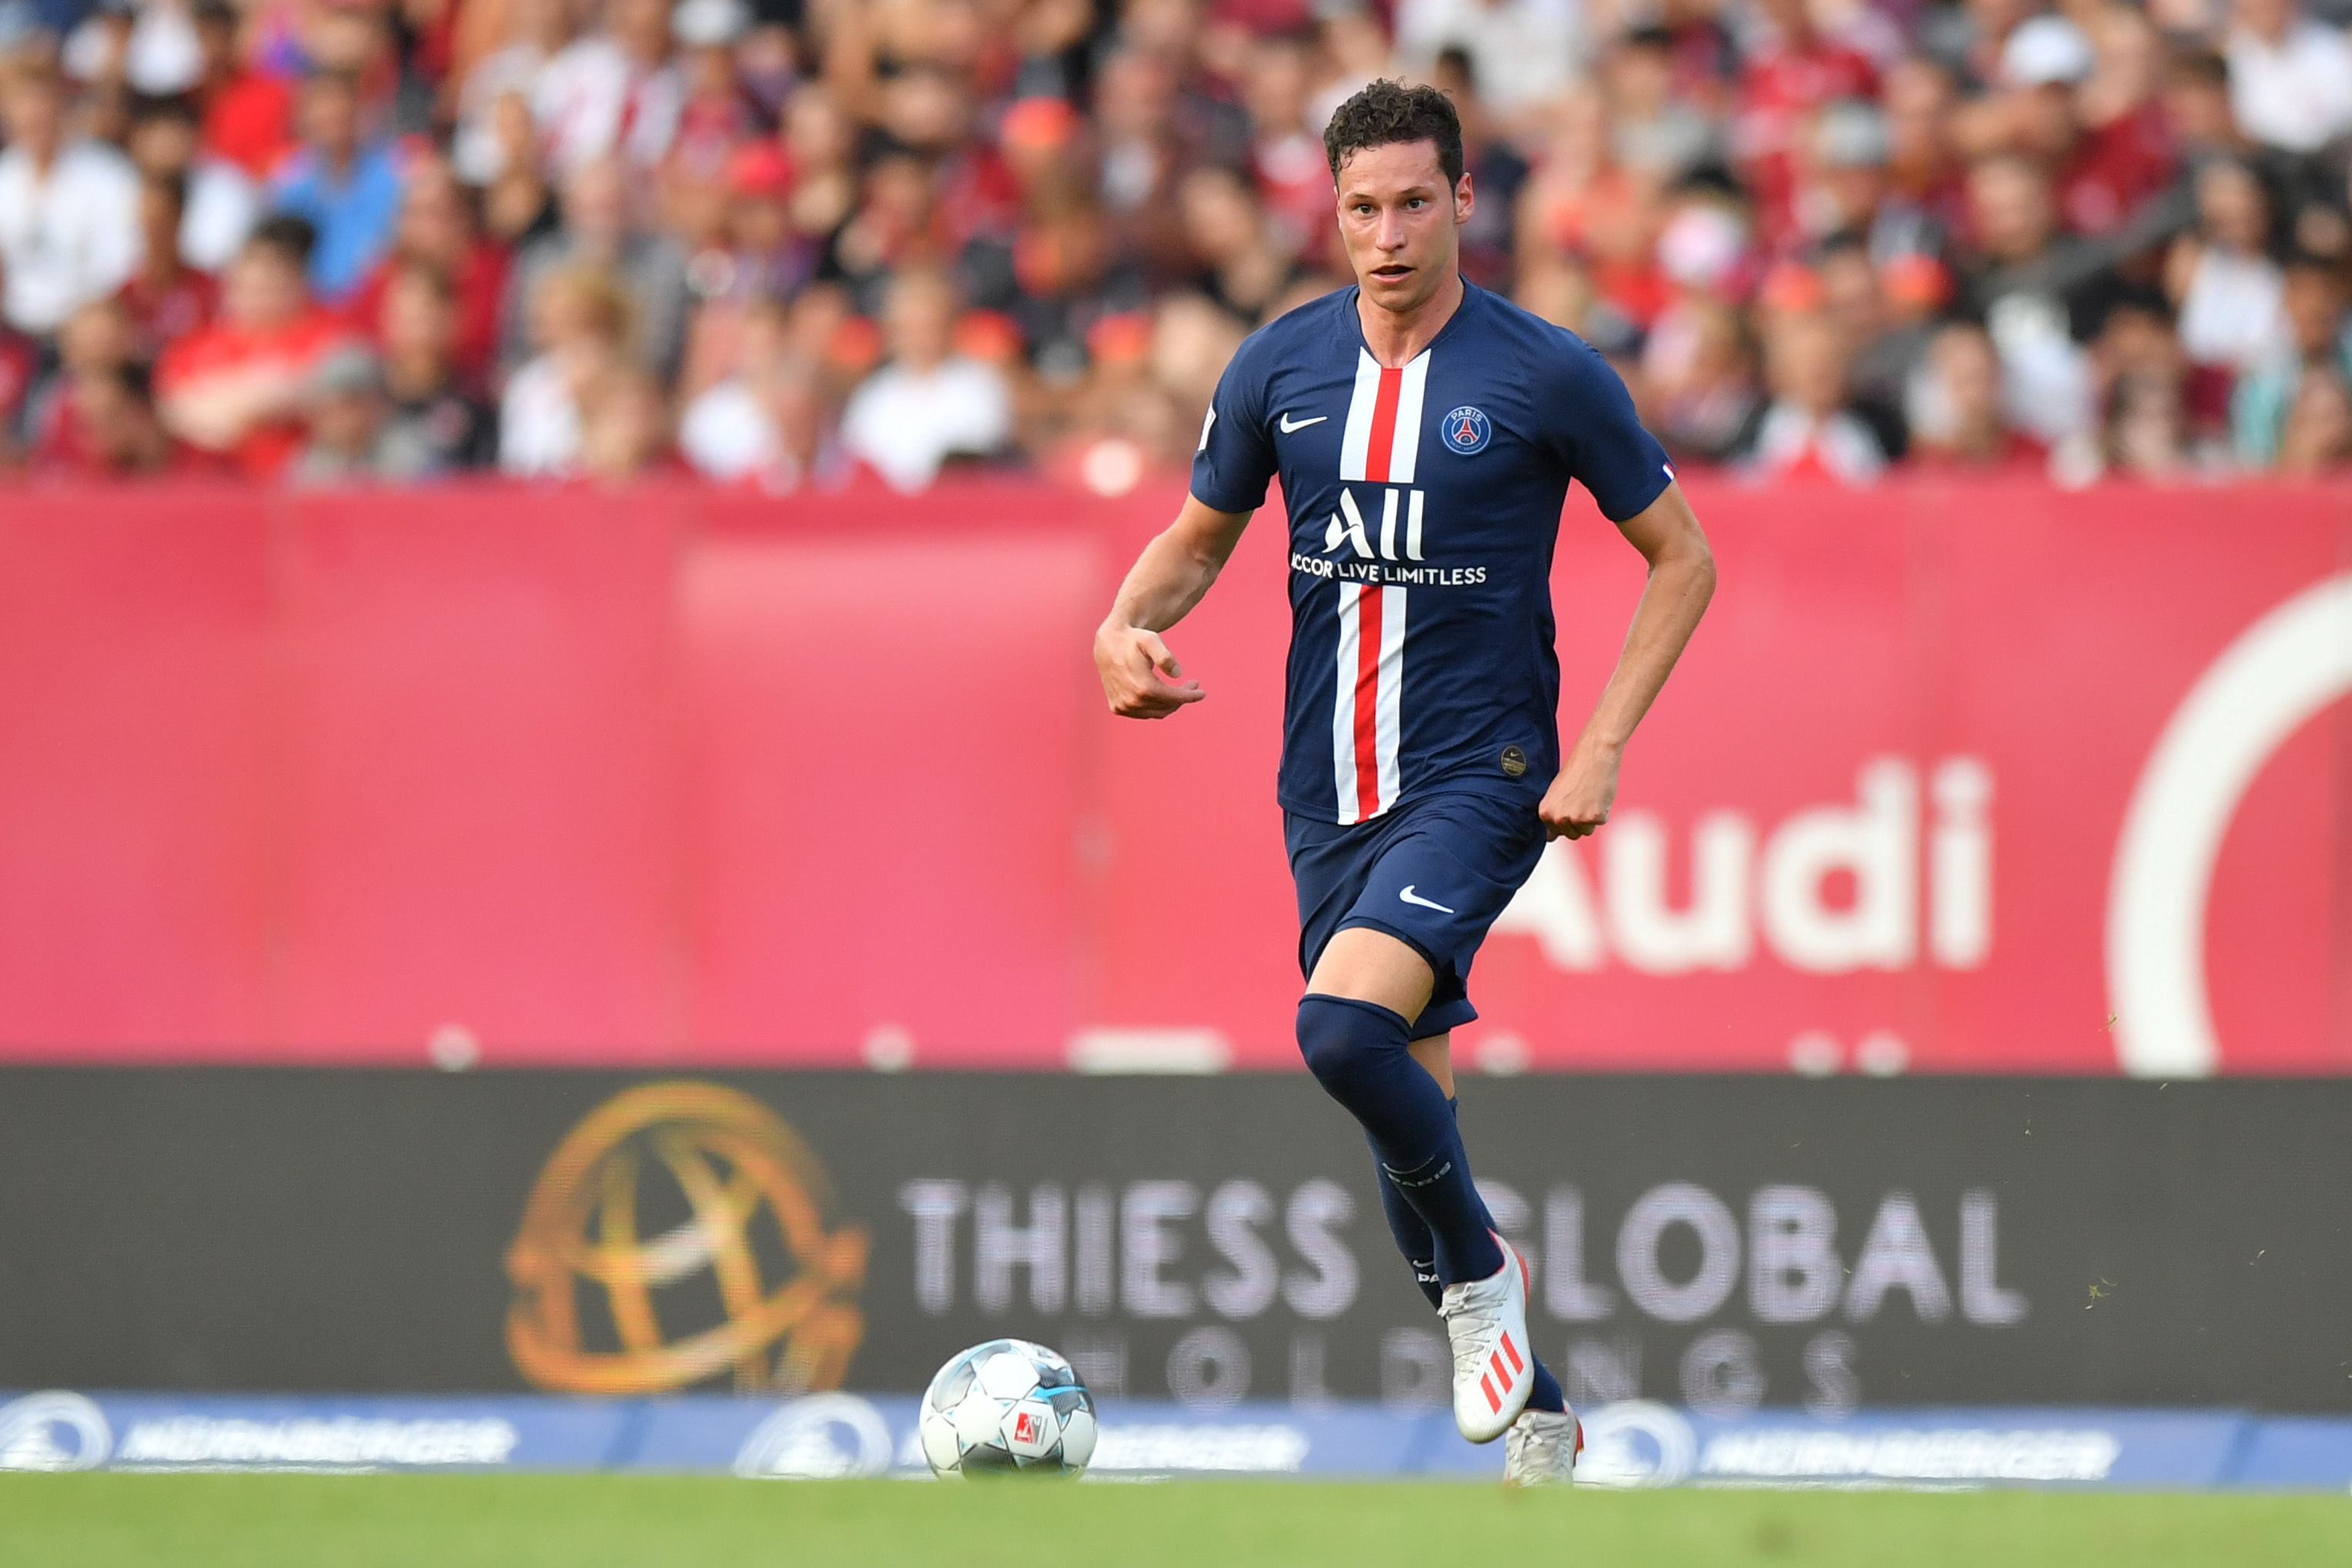 VIDEO - Draxler reste énigmatique sur l'avenir de Neymar